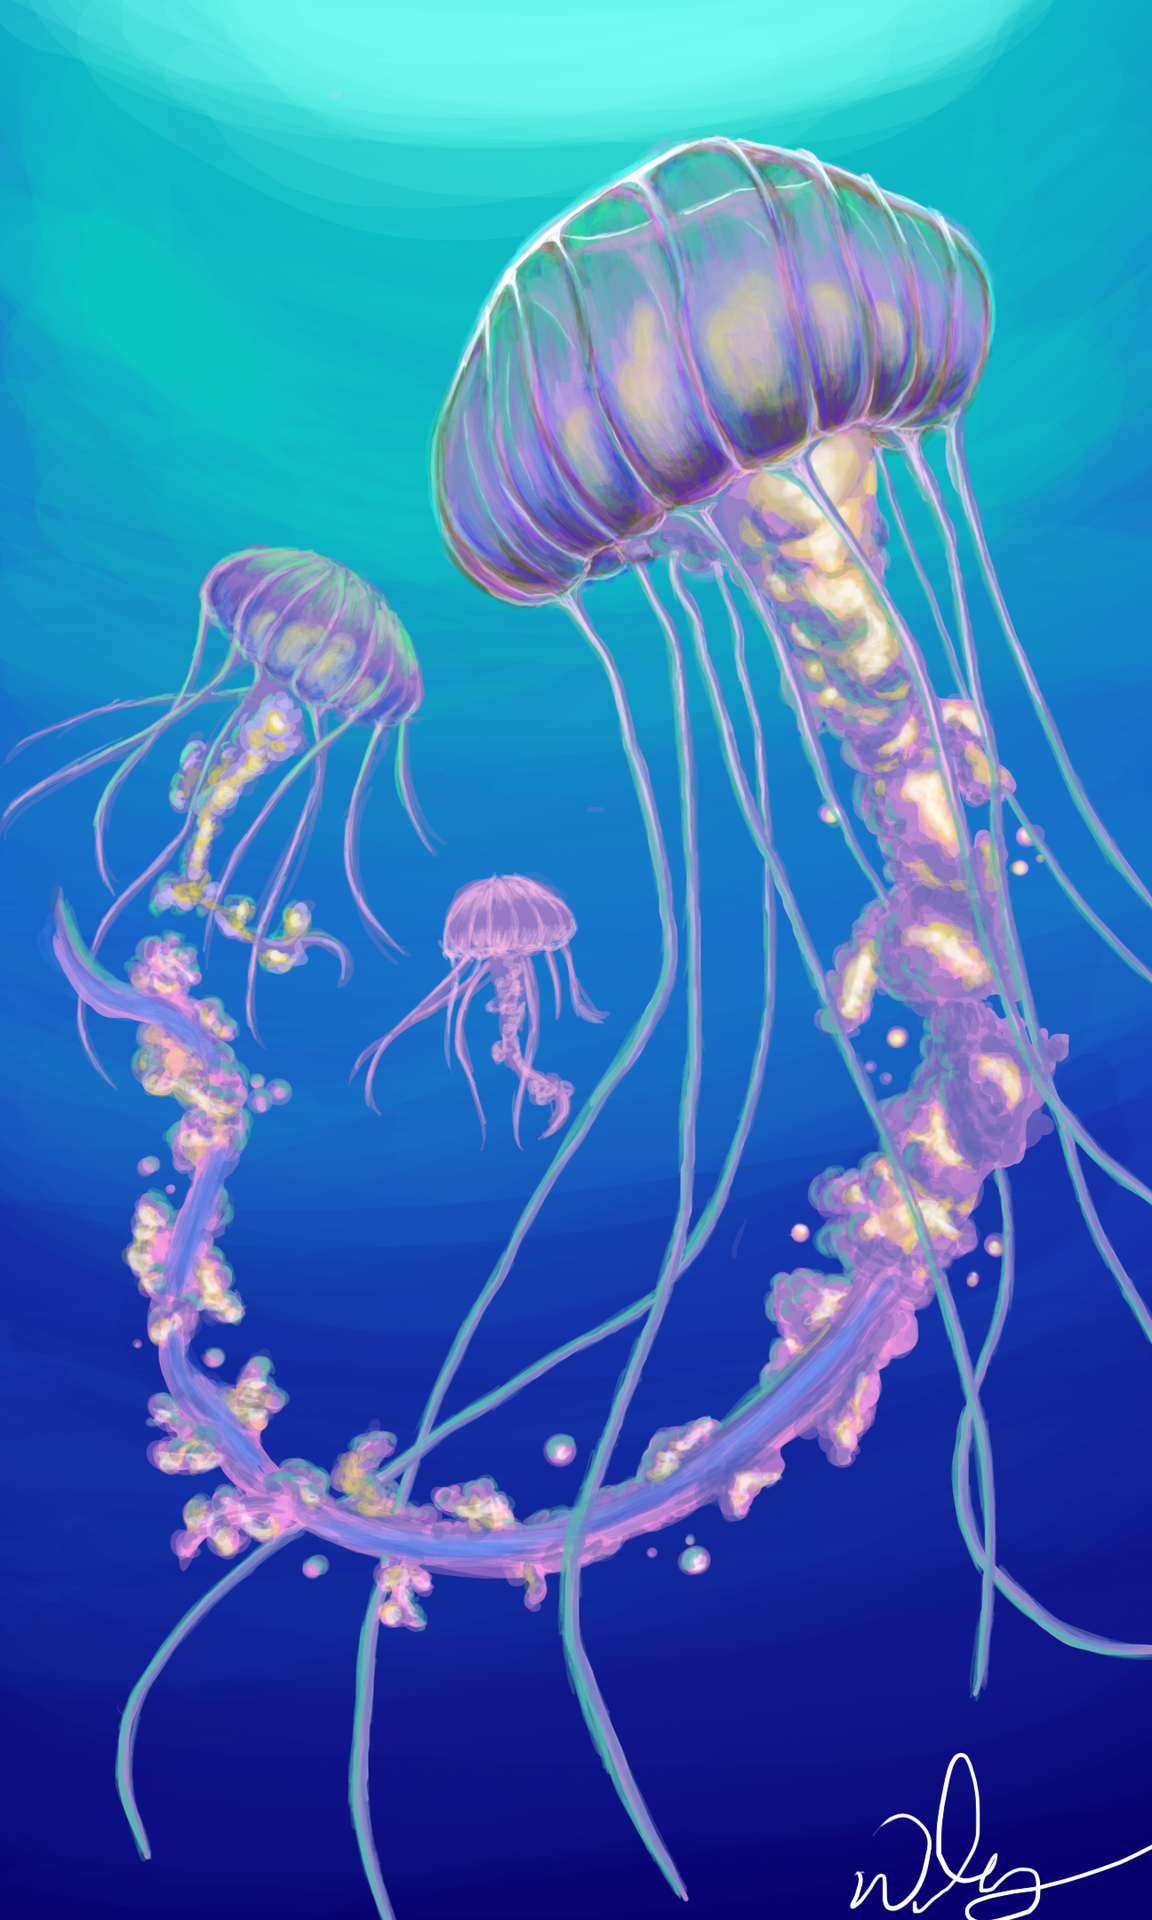 Jellyfish painting tumblr images for Jelly fish painting